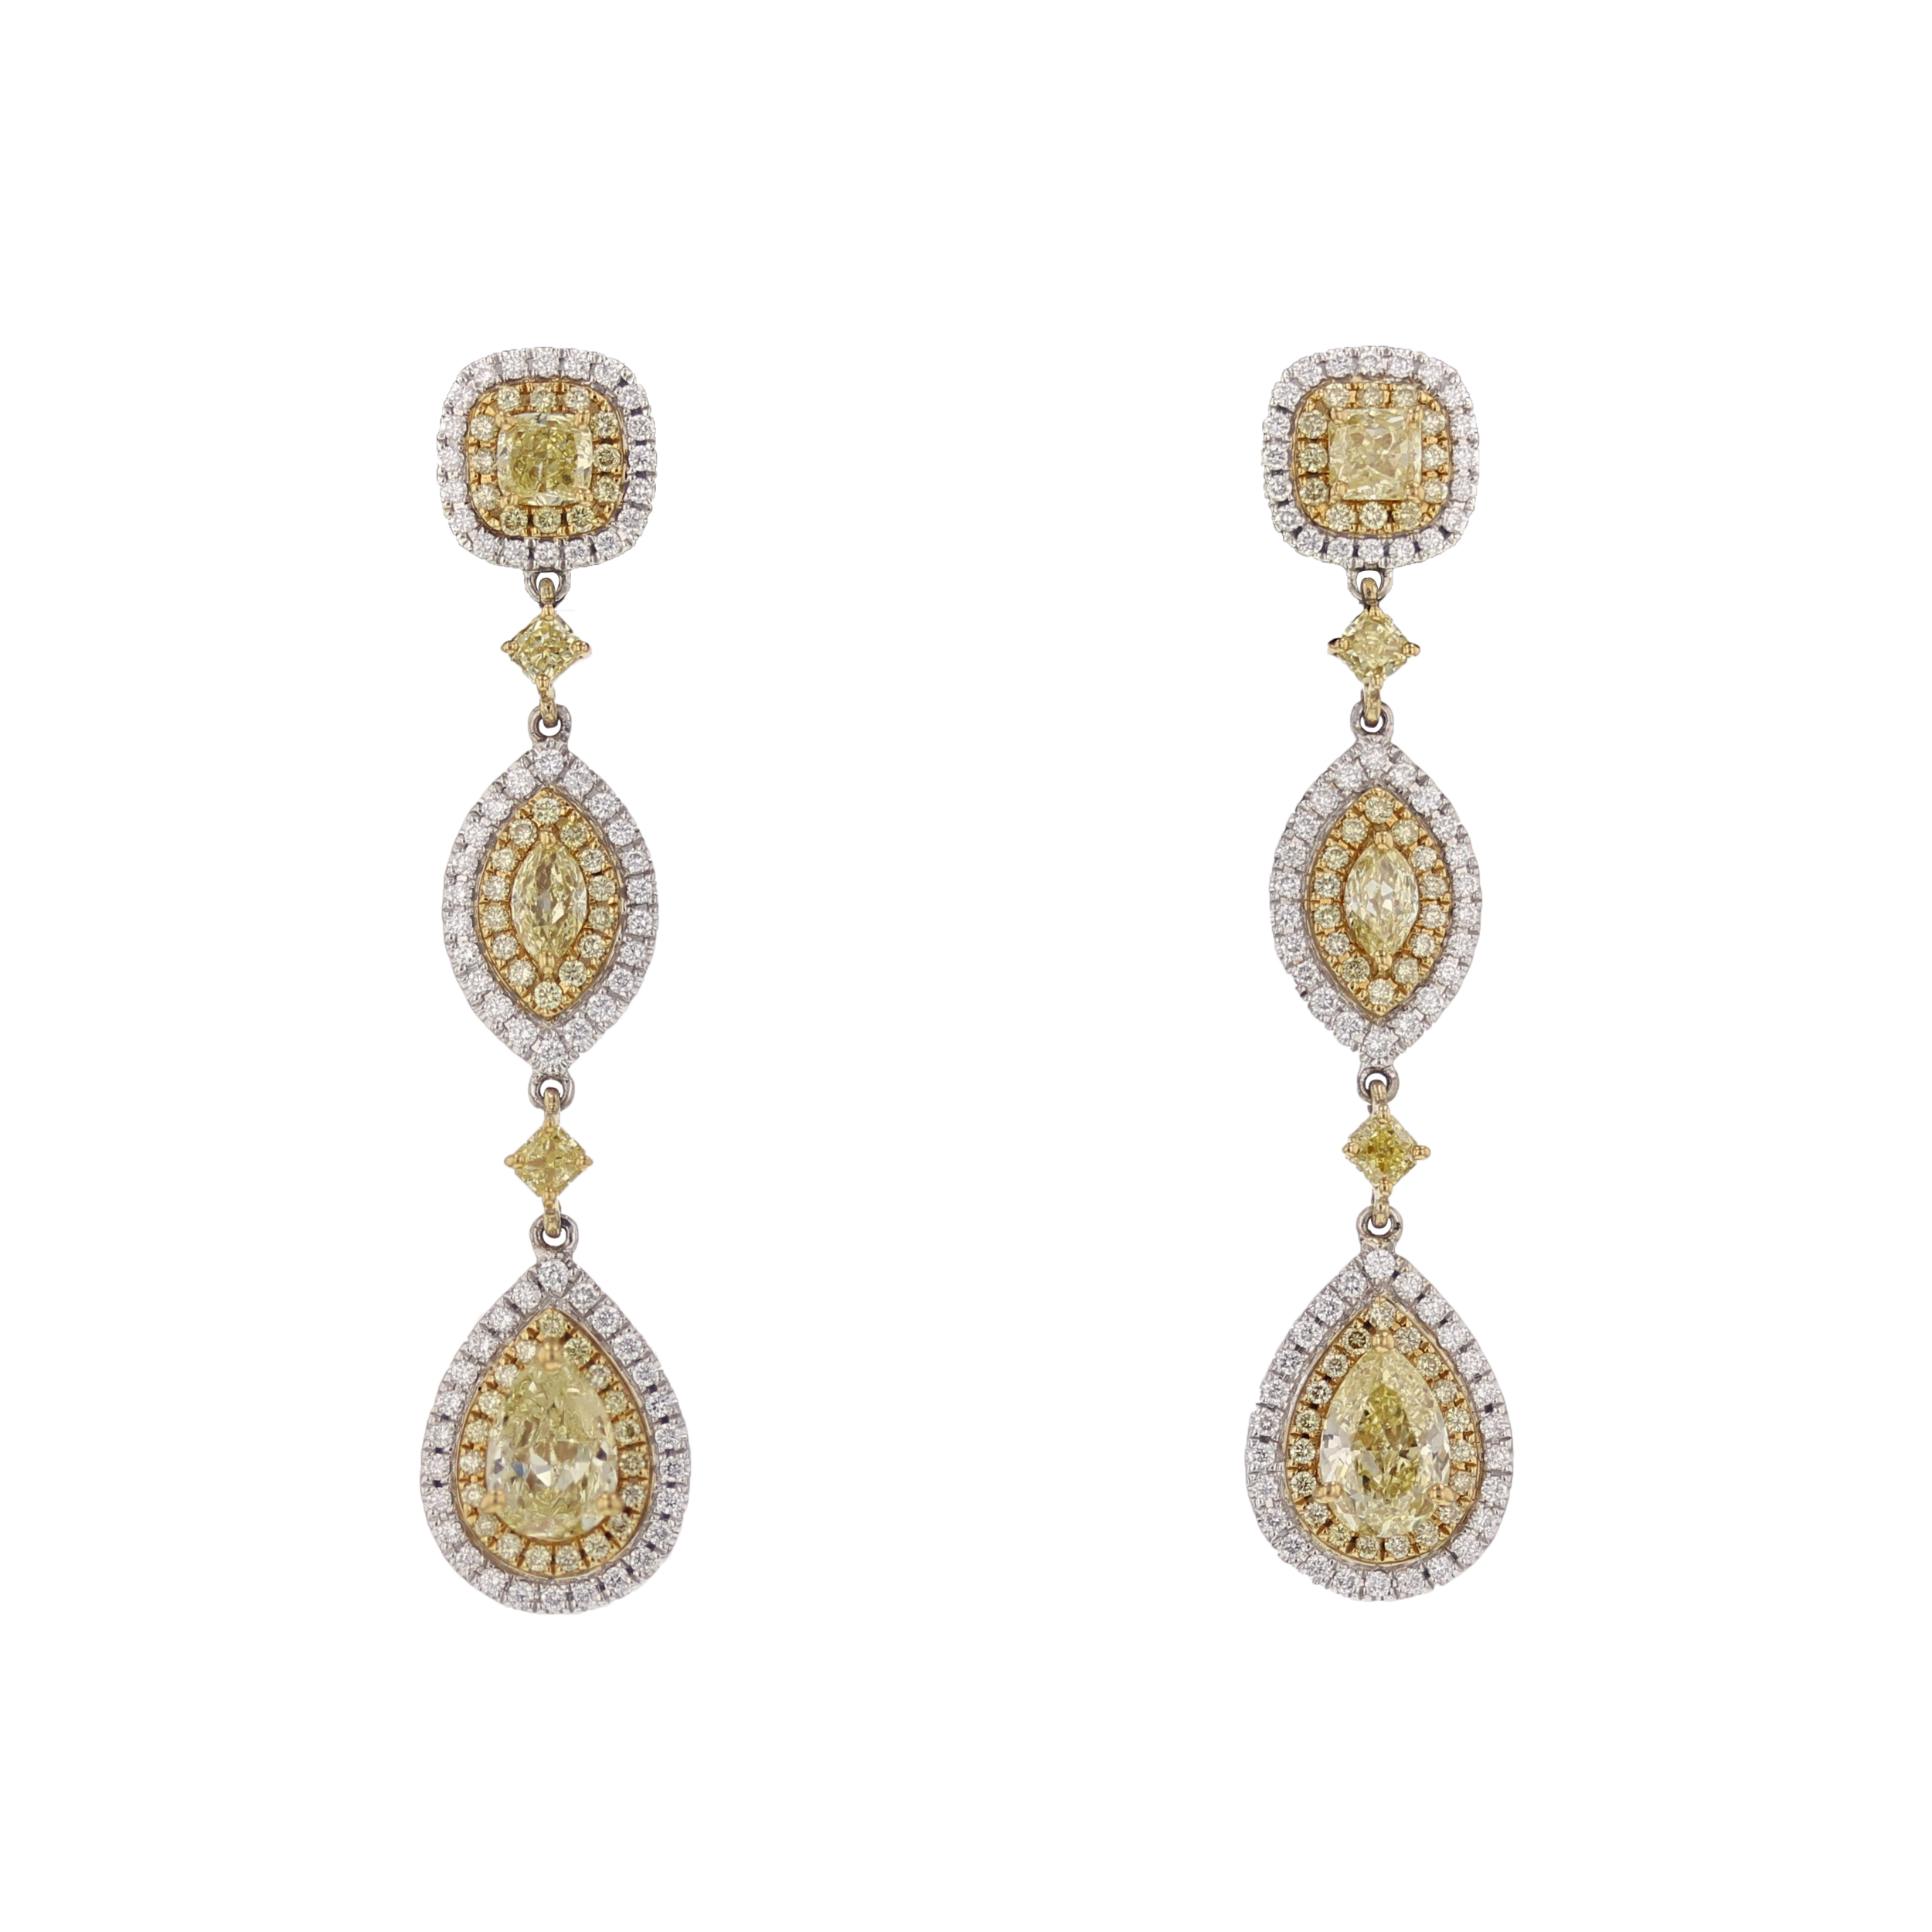 4+ ctw. Yellow & White Dia. earrings. $35,375